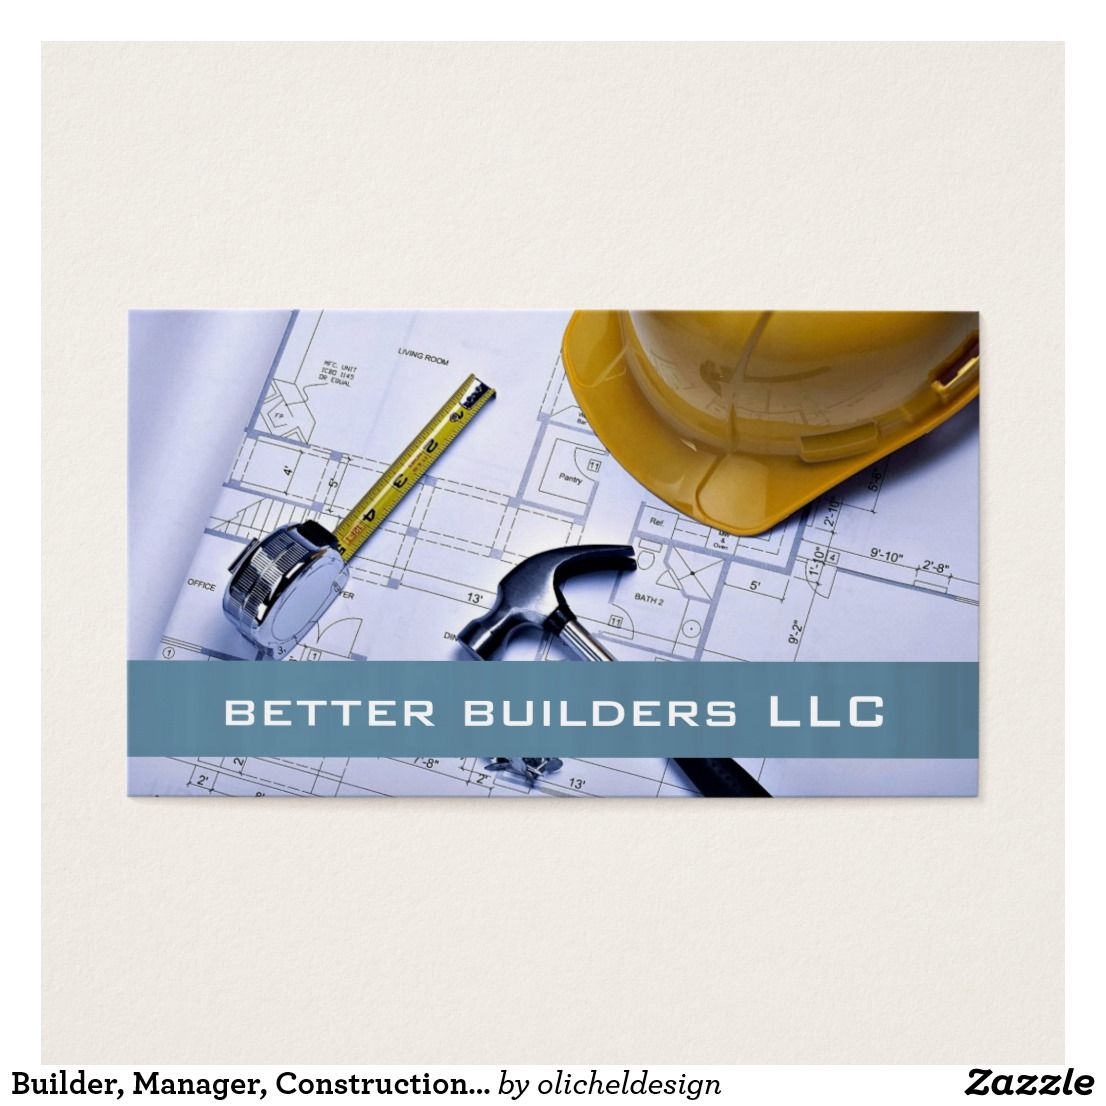 Builder manager construction business card zazzle house builder manager construction business card zazzle reheart Gallery